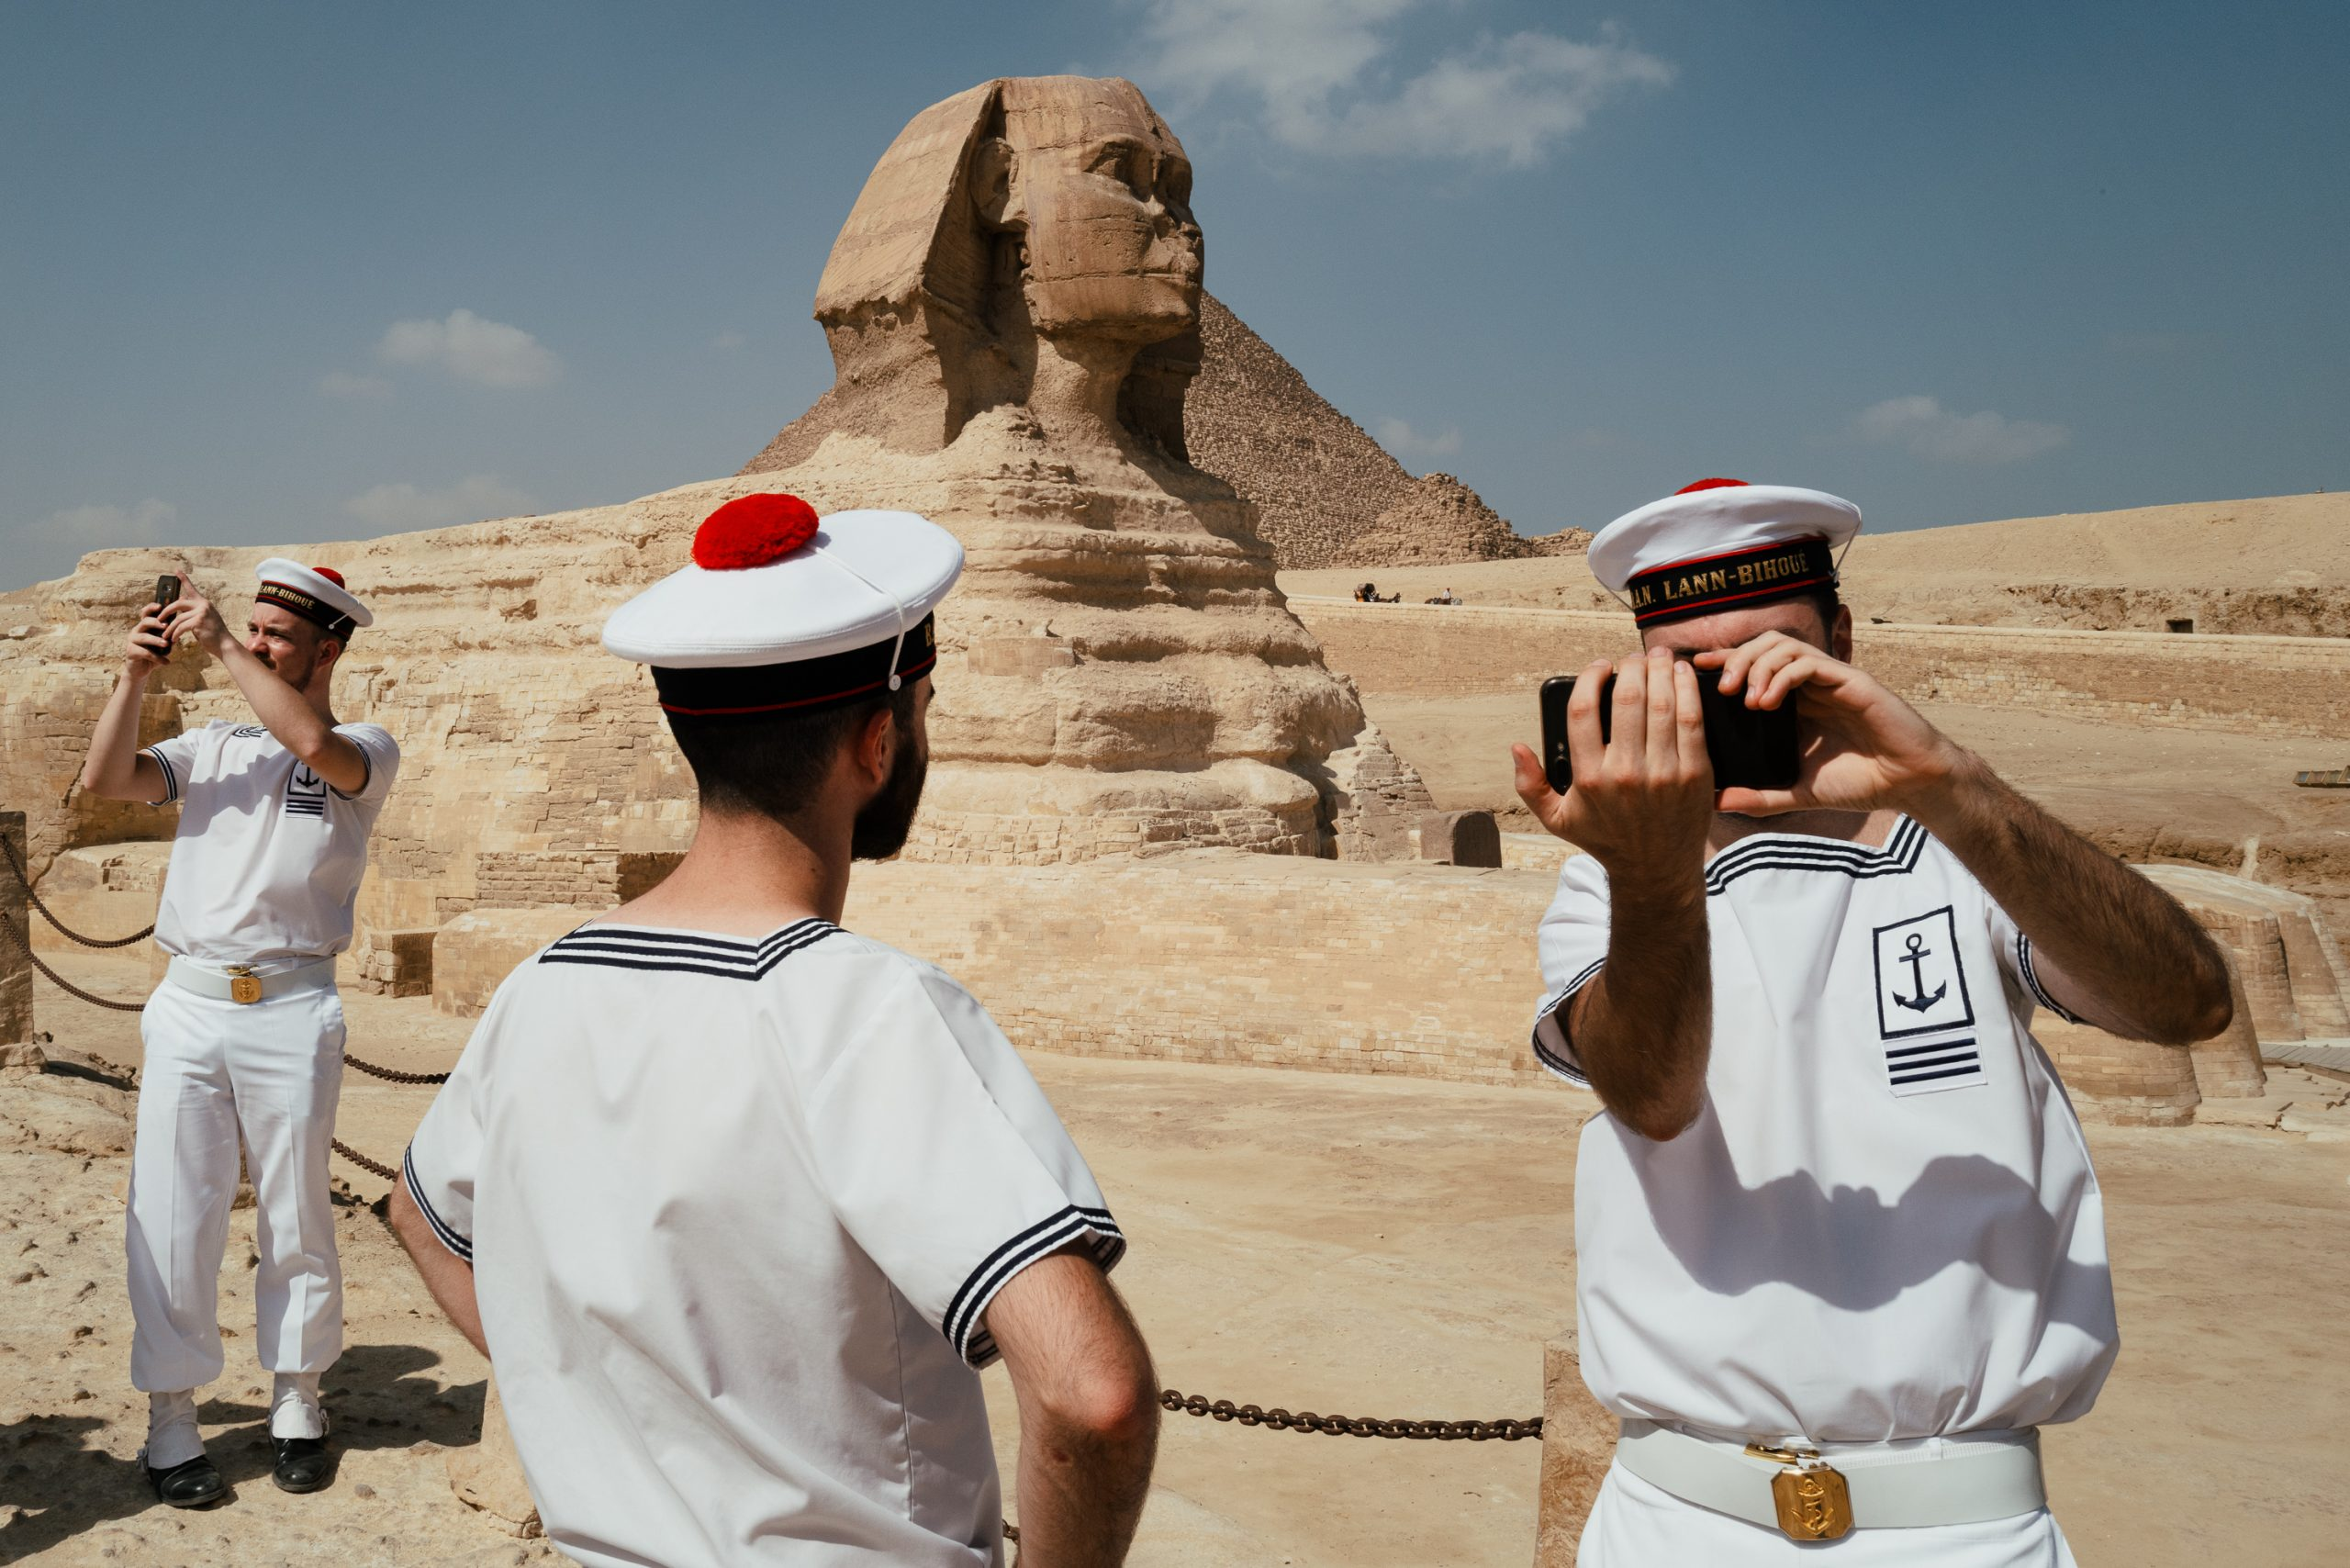 color street photography of French Navy sailors in front of the Sphinx in Egypt by Jonathan Jasberg